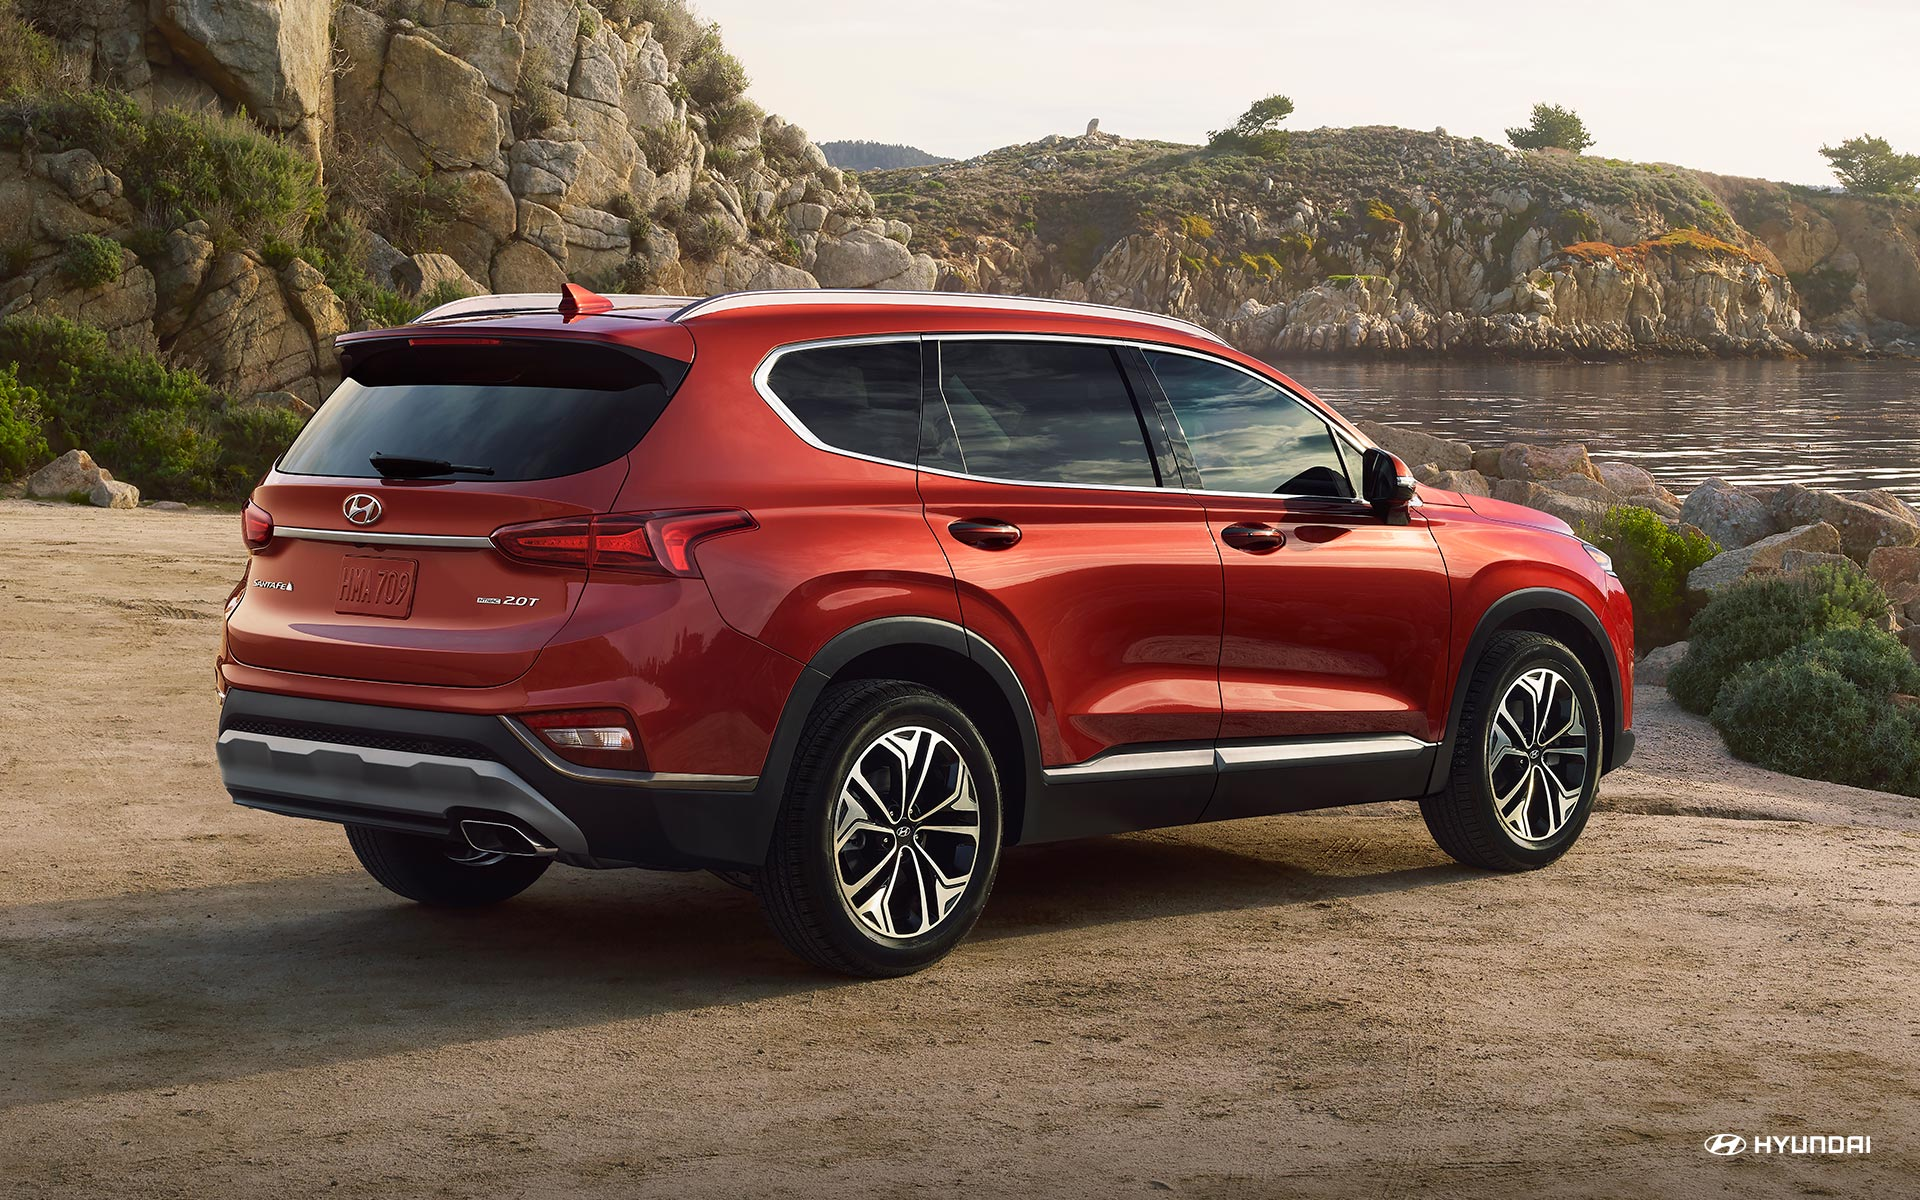 Test drive the 2020 Hyundai Santa Fe near Littleton CO